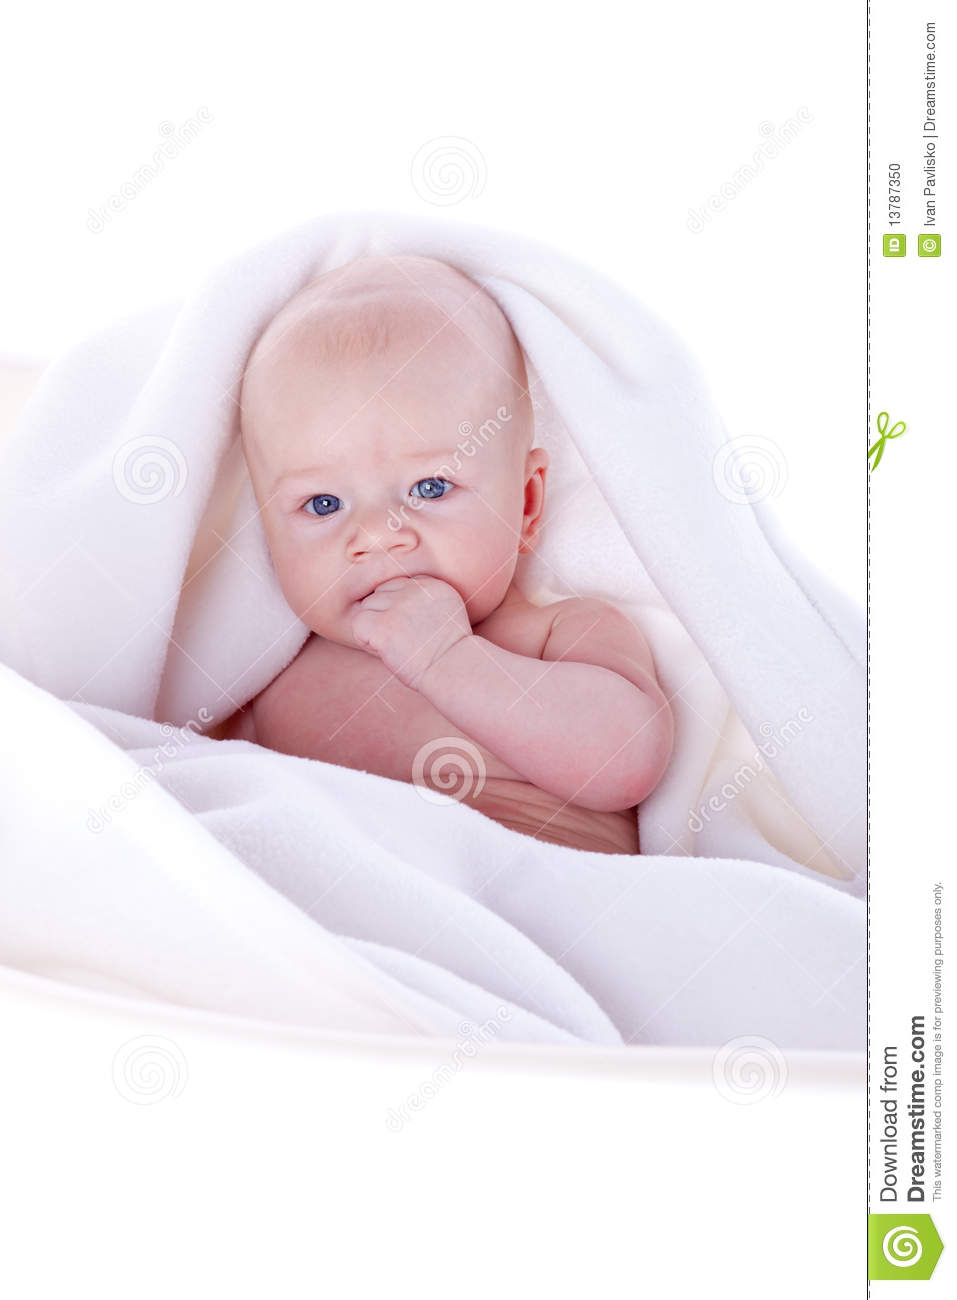 A Beautiful Baby Under A White Towel Stock Photo